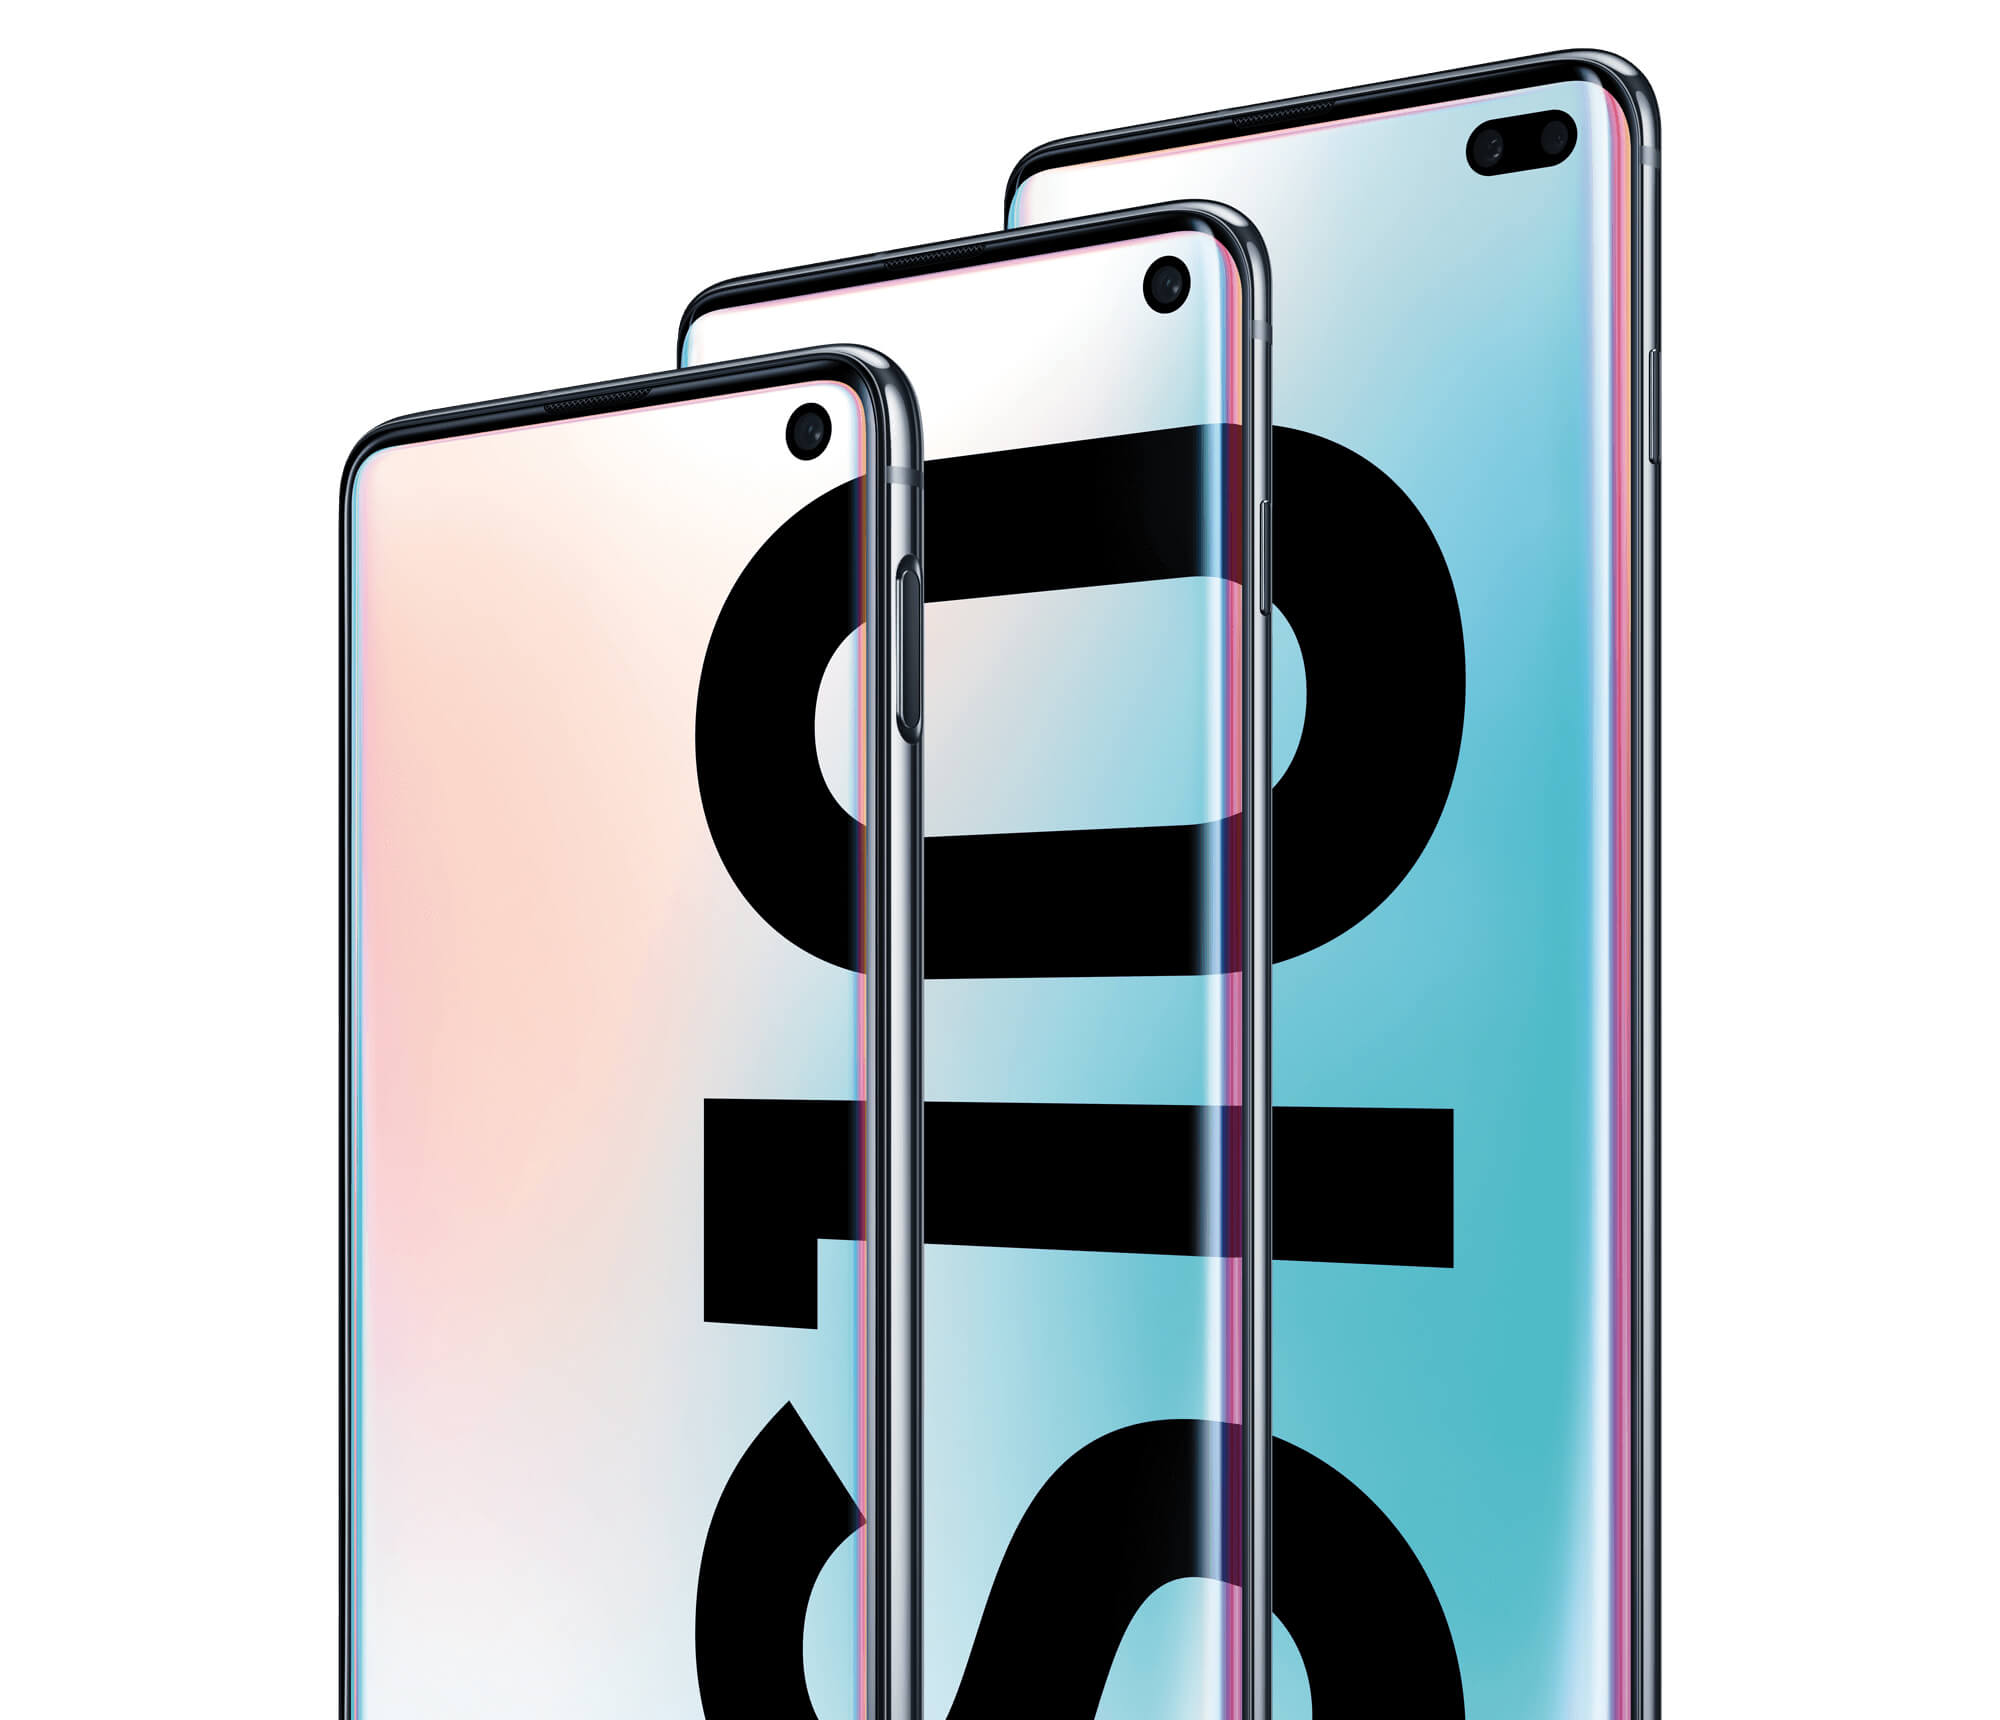 Samsung Galaxy S10, S10+ and S10e lined up together.